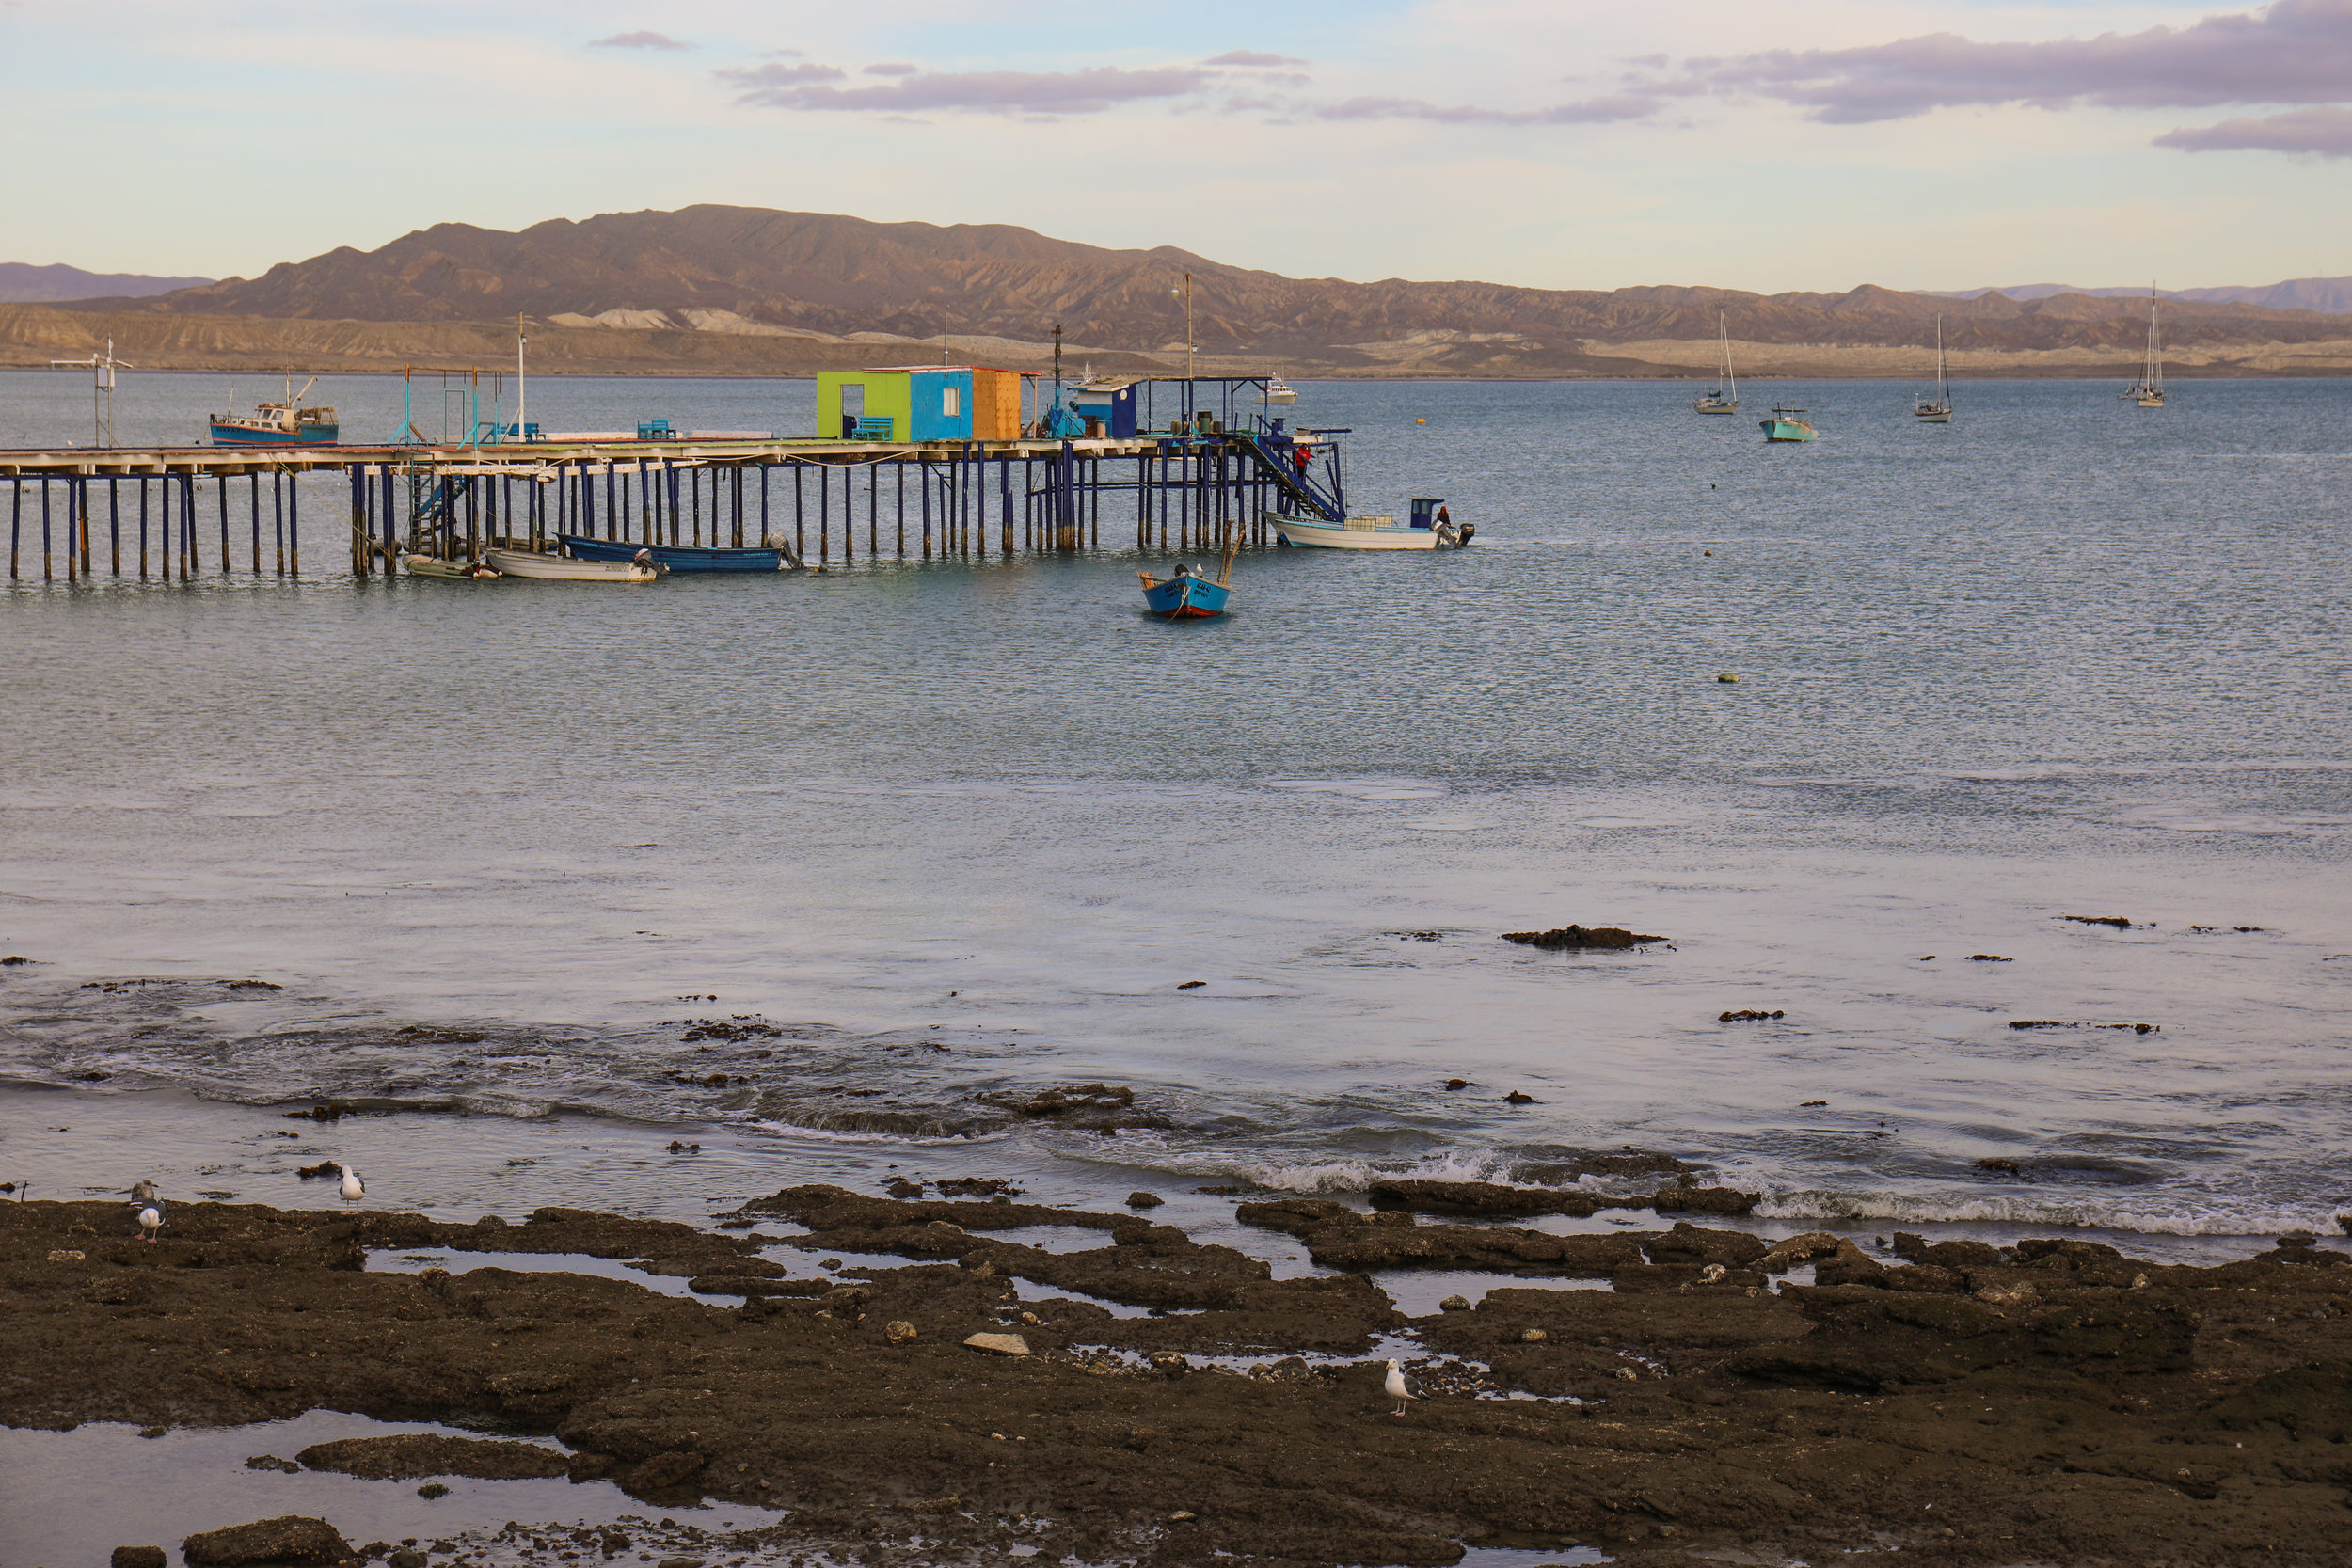 The pier/fuel dock at Turtle Bay